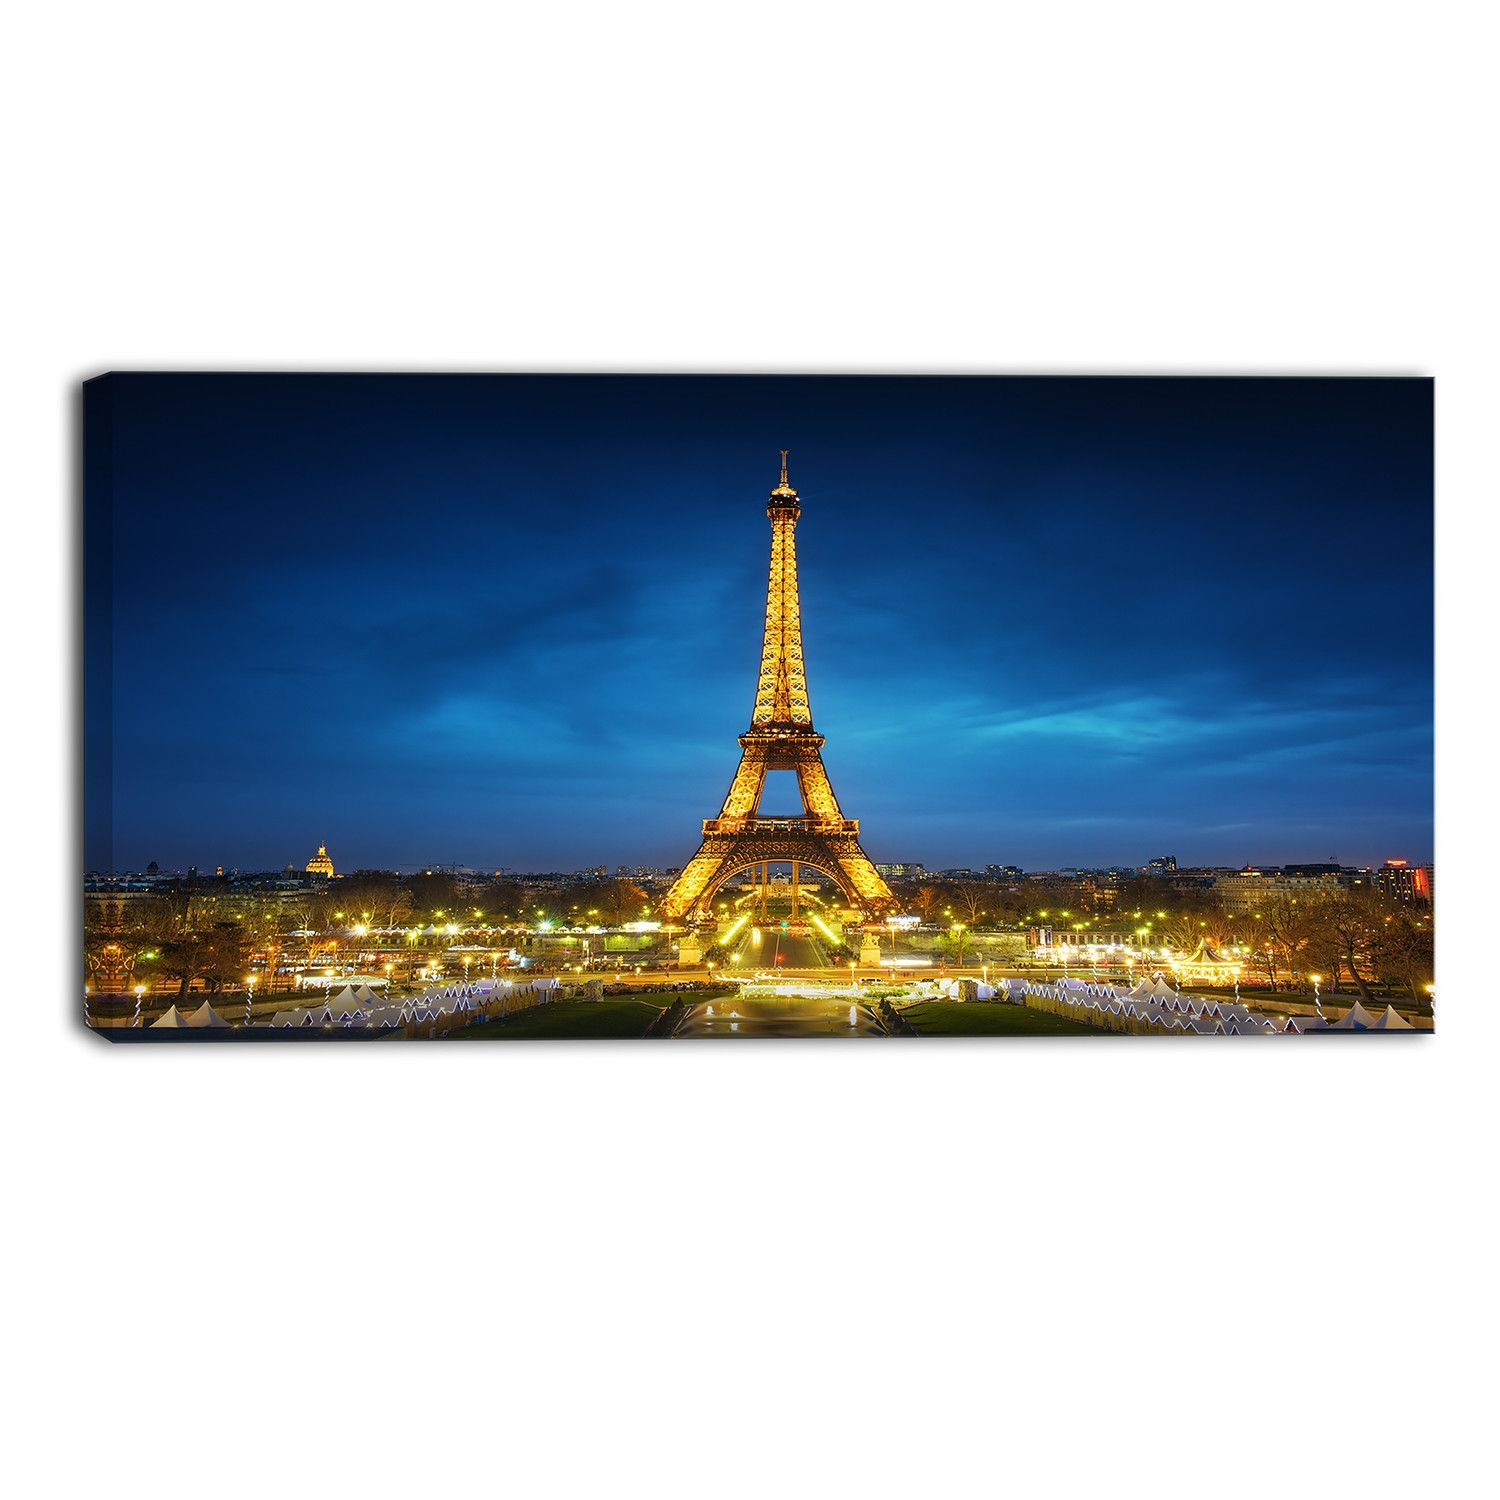 Paris Cityscape at Sunset Photographic Print on Wrapped Canvas